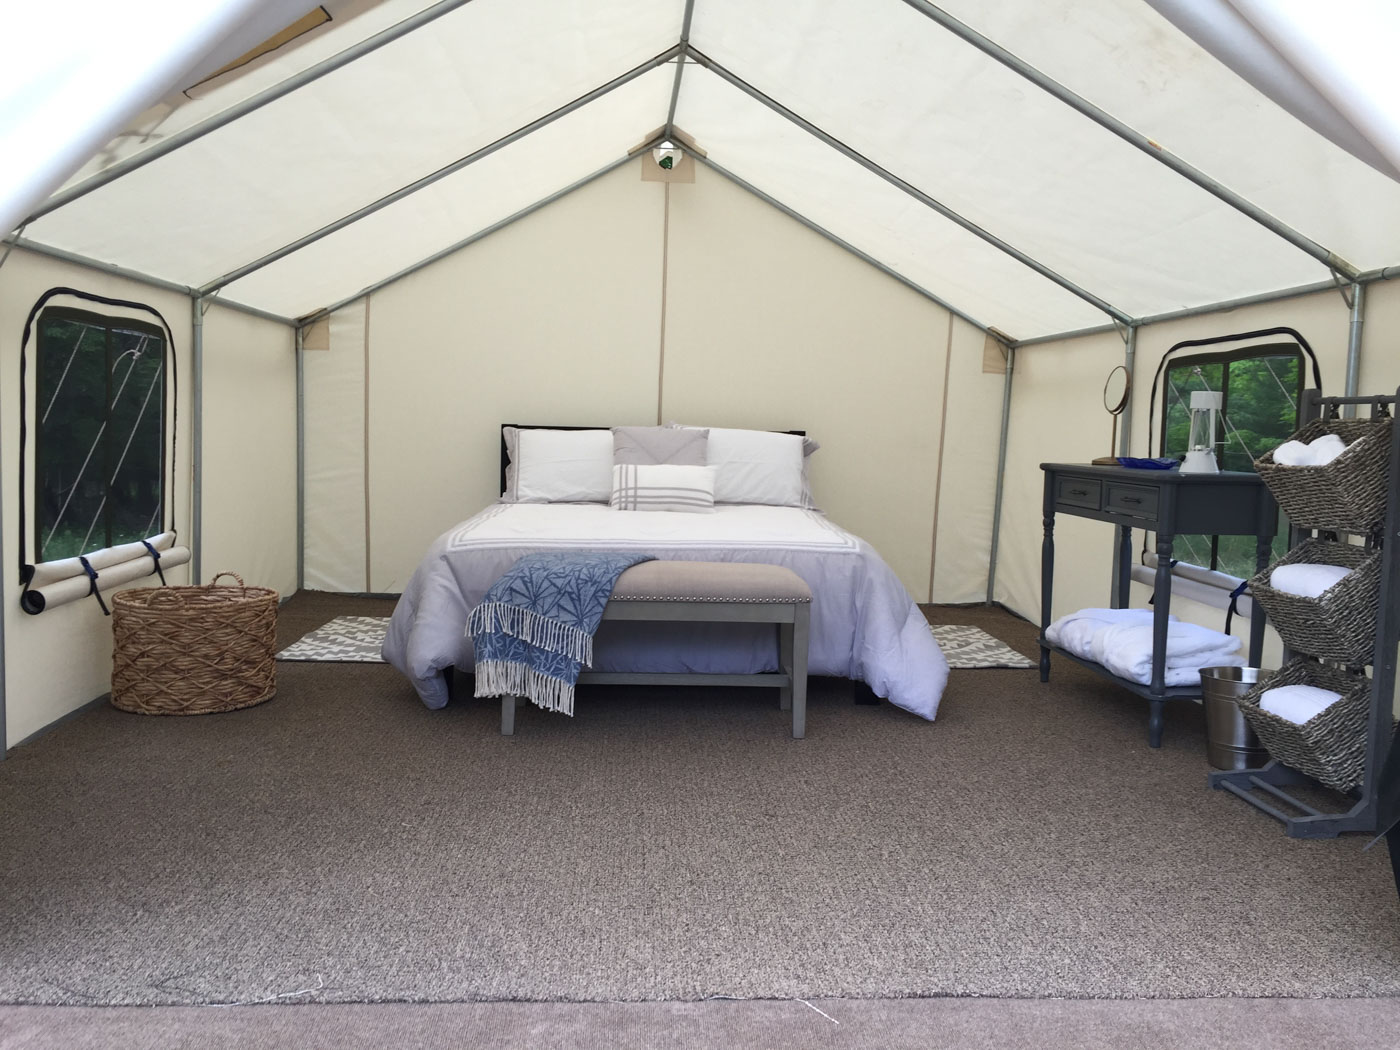 Glamping at Woodstock Meadows